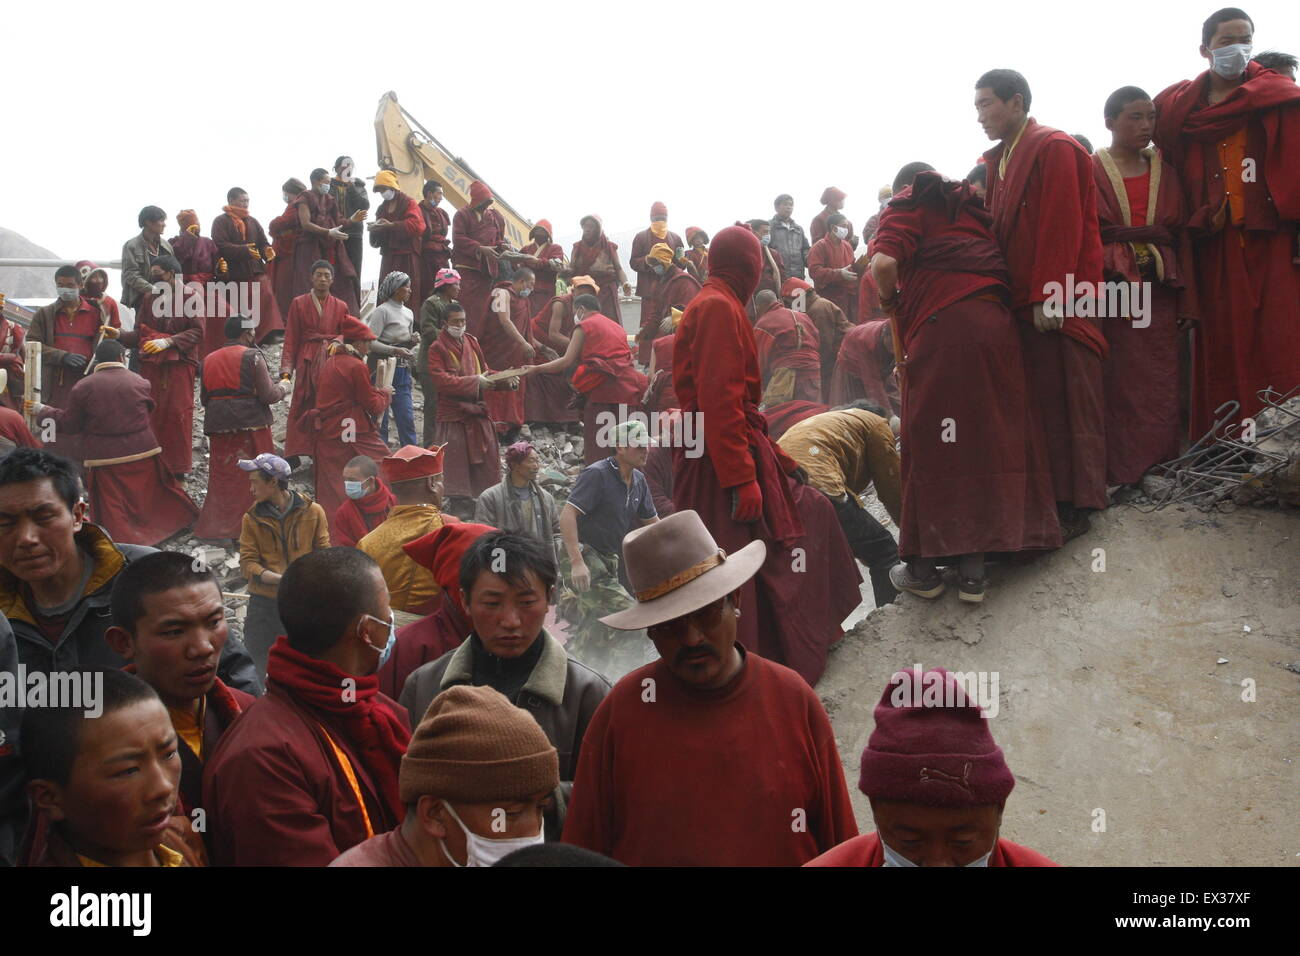 Monks and ethnic Tibetans search for survivors in the earthquake-hit town of Gyegu in Yushu County, Qinghai province, - Stock Image